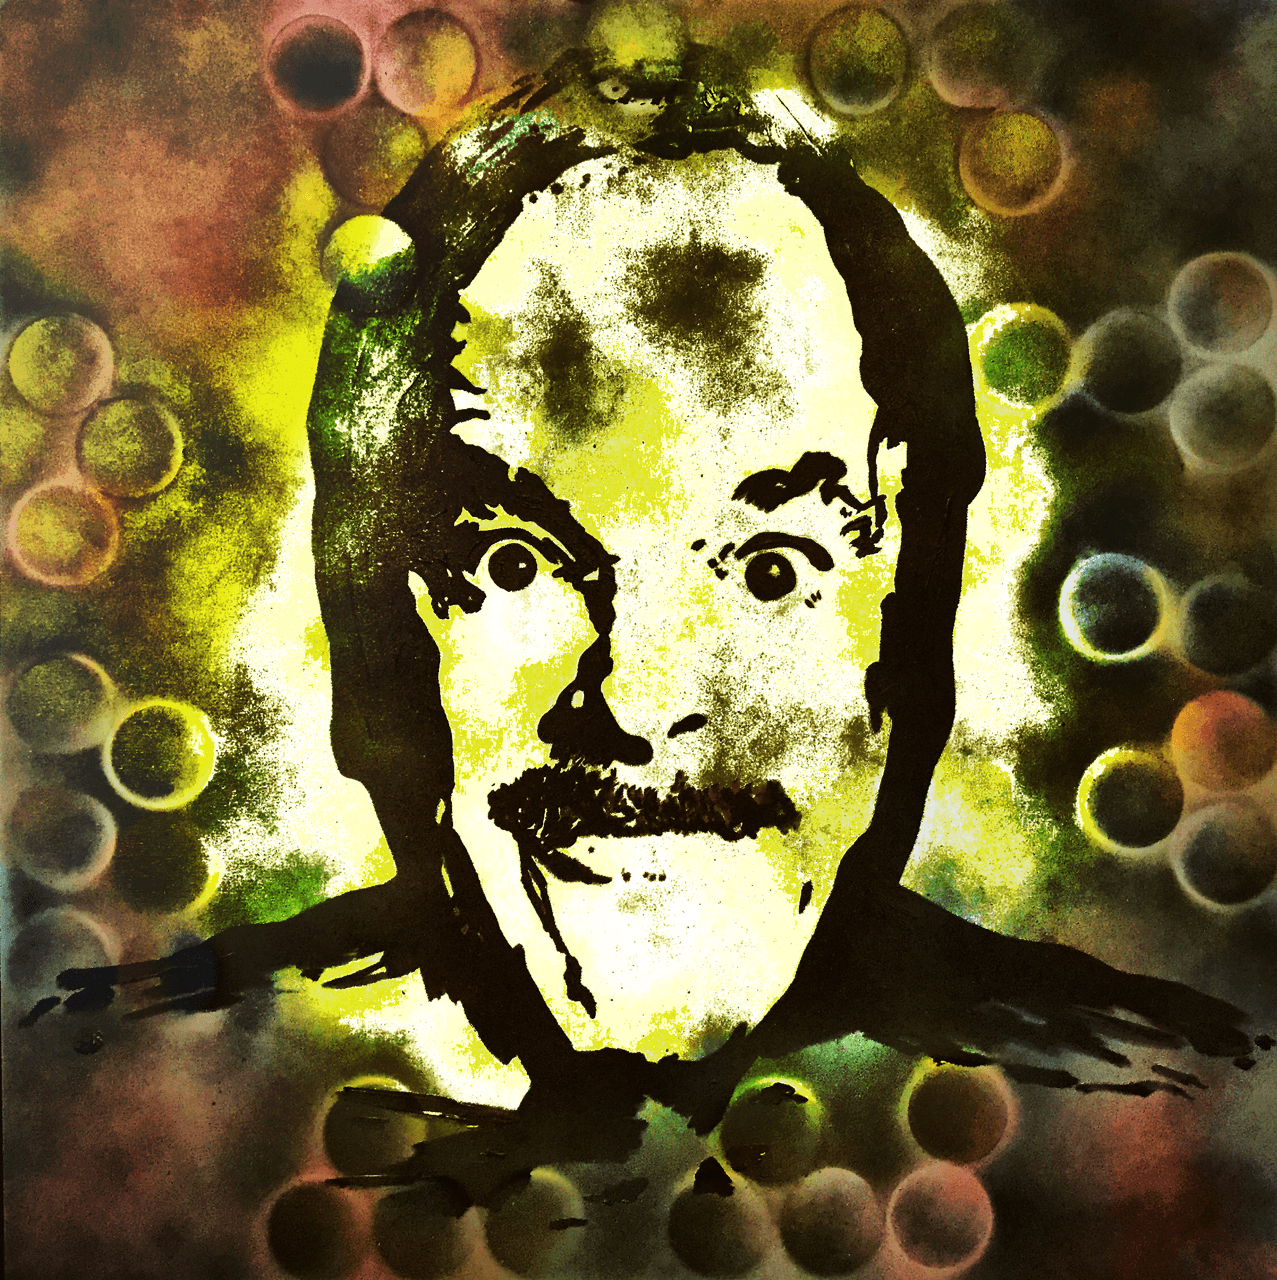 Lincoln Townley's portrait of John Cleese